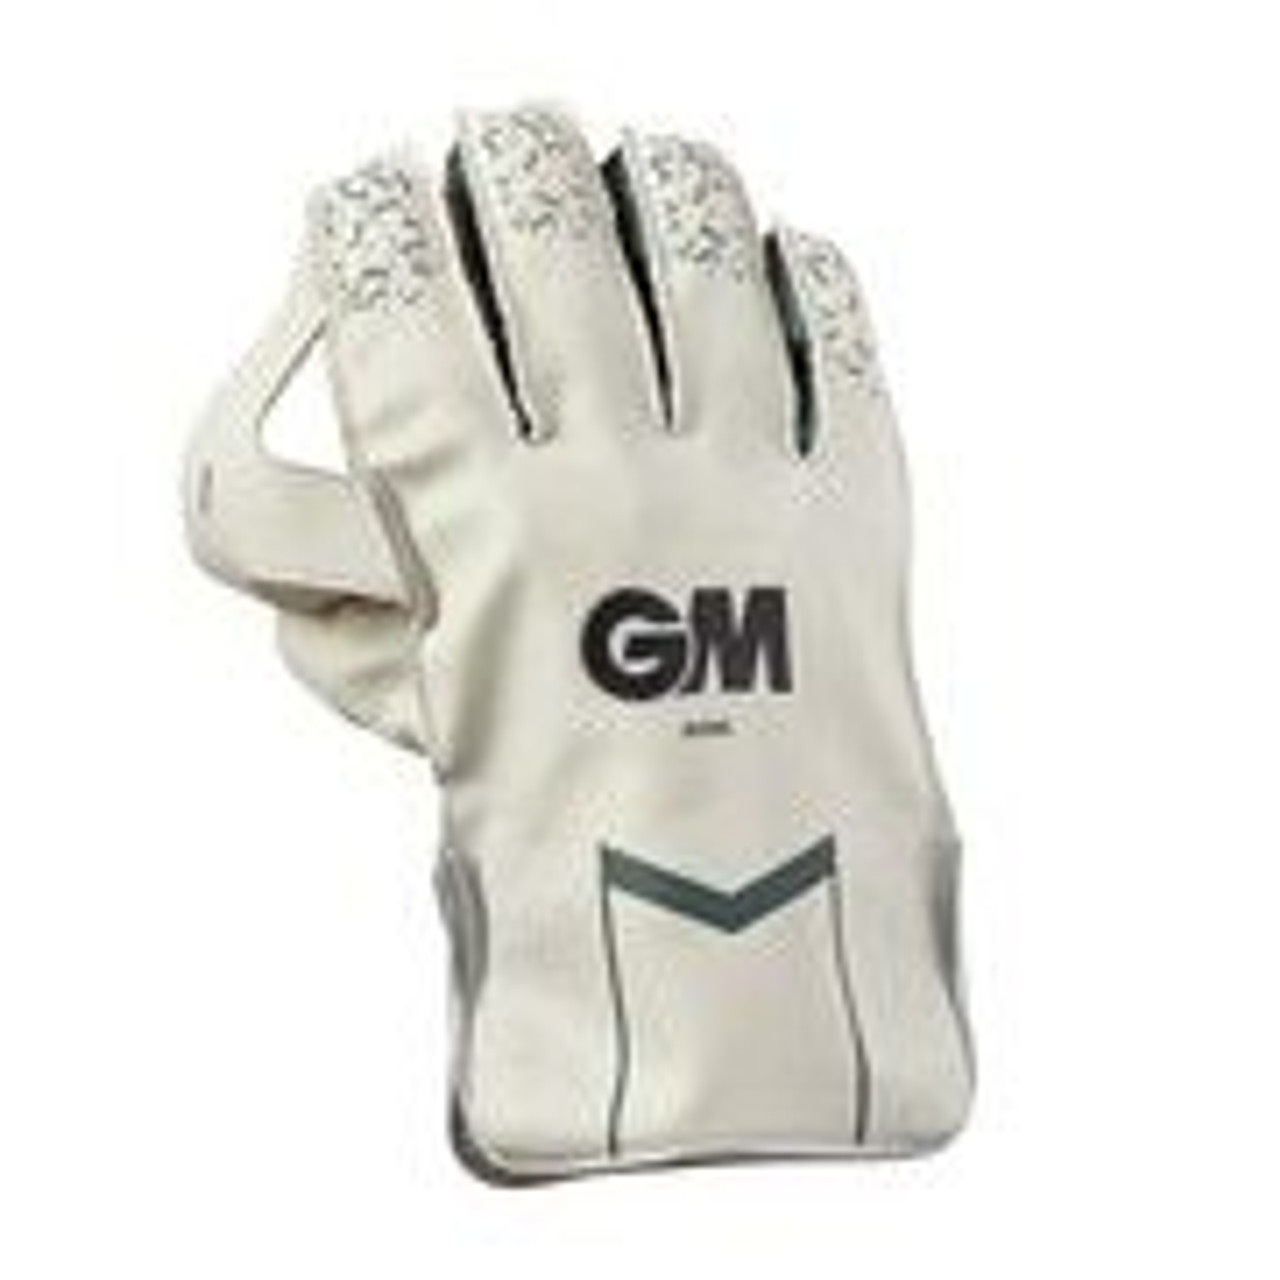 GM Keeper Gear